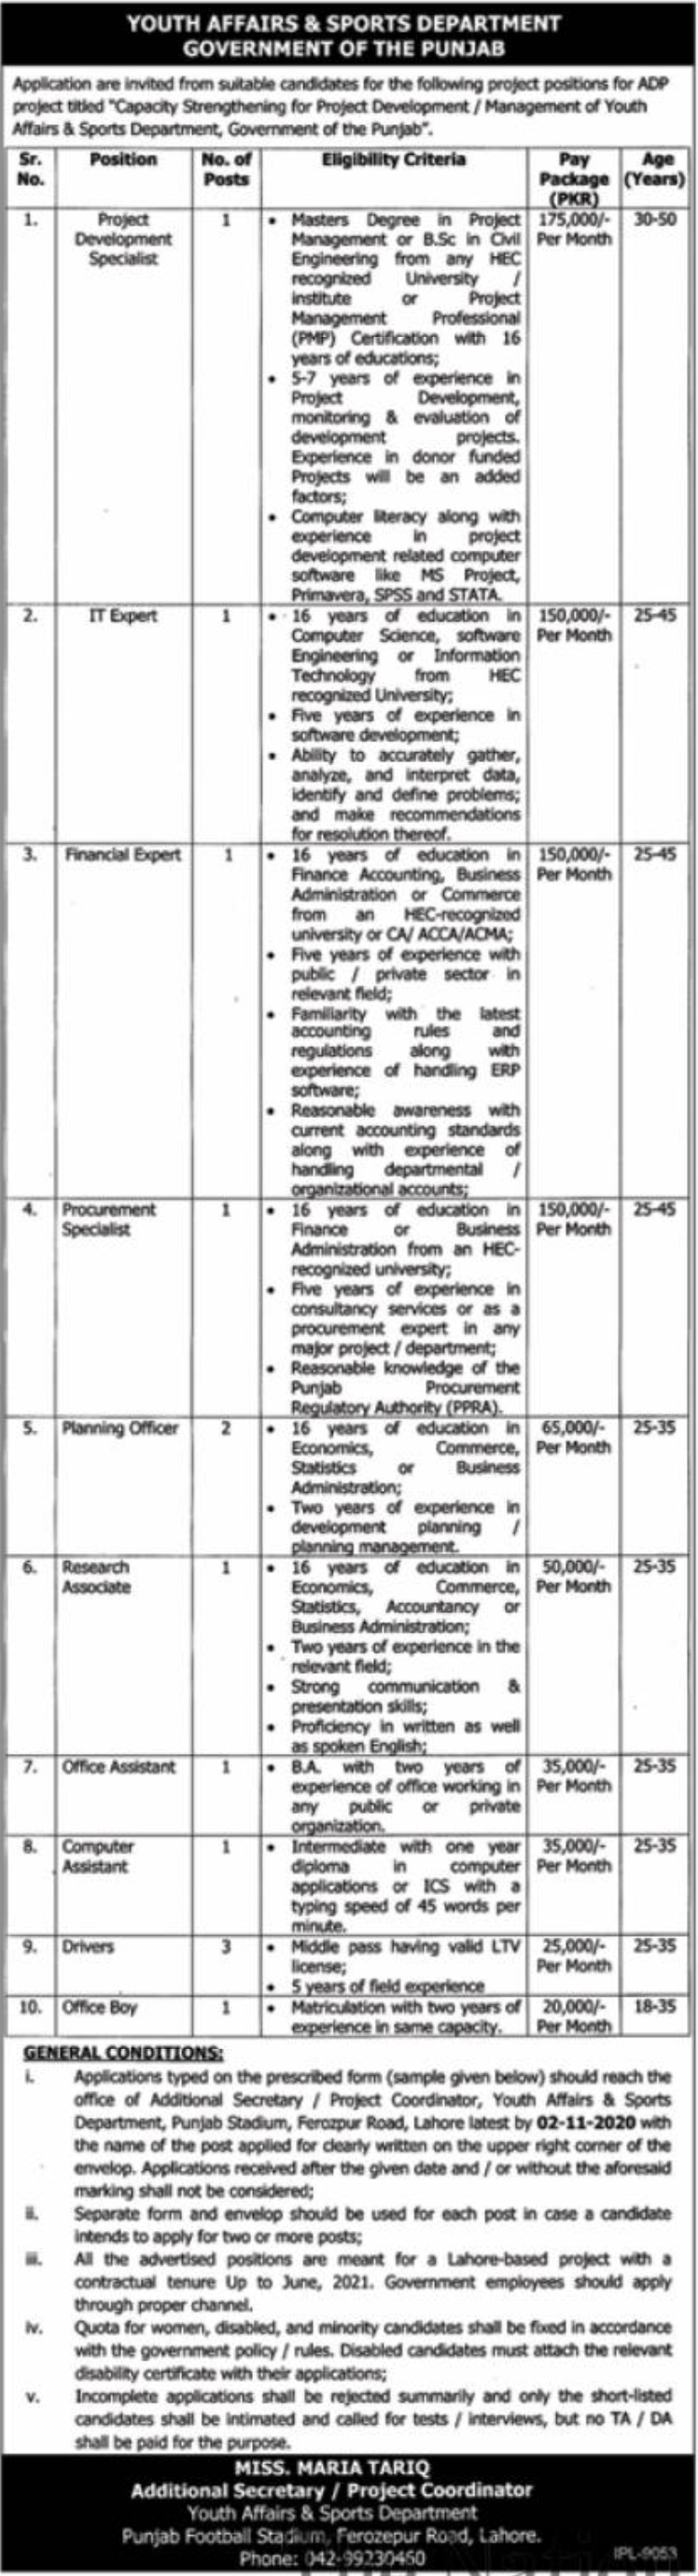 I Com Pass job For Computer Assistant in Youth Affairs & Sports Department Government of The Punjab in Lahore for Pakistan candidates -2020